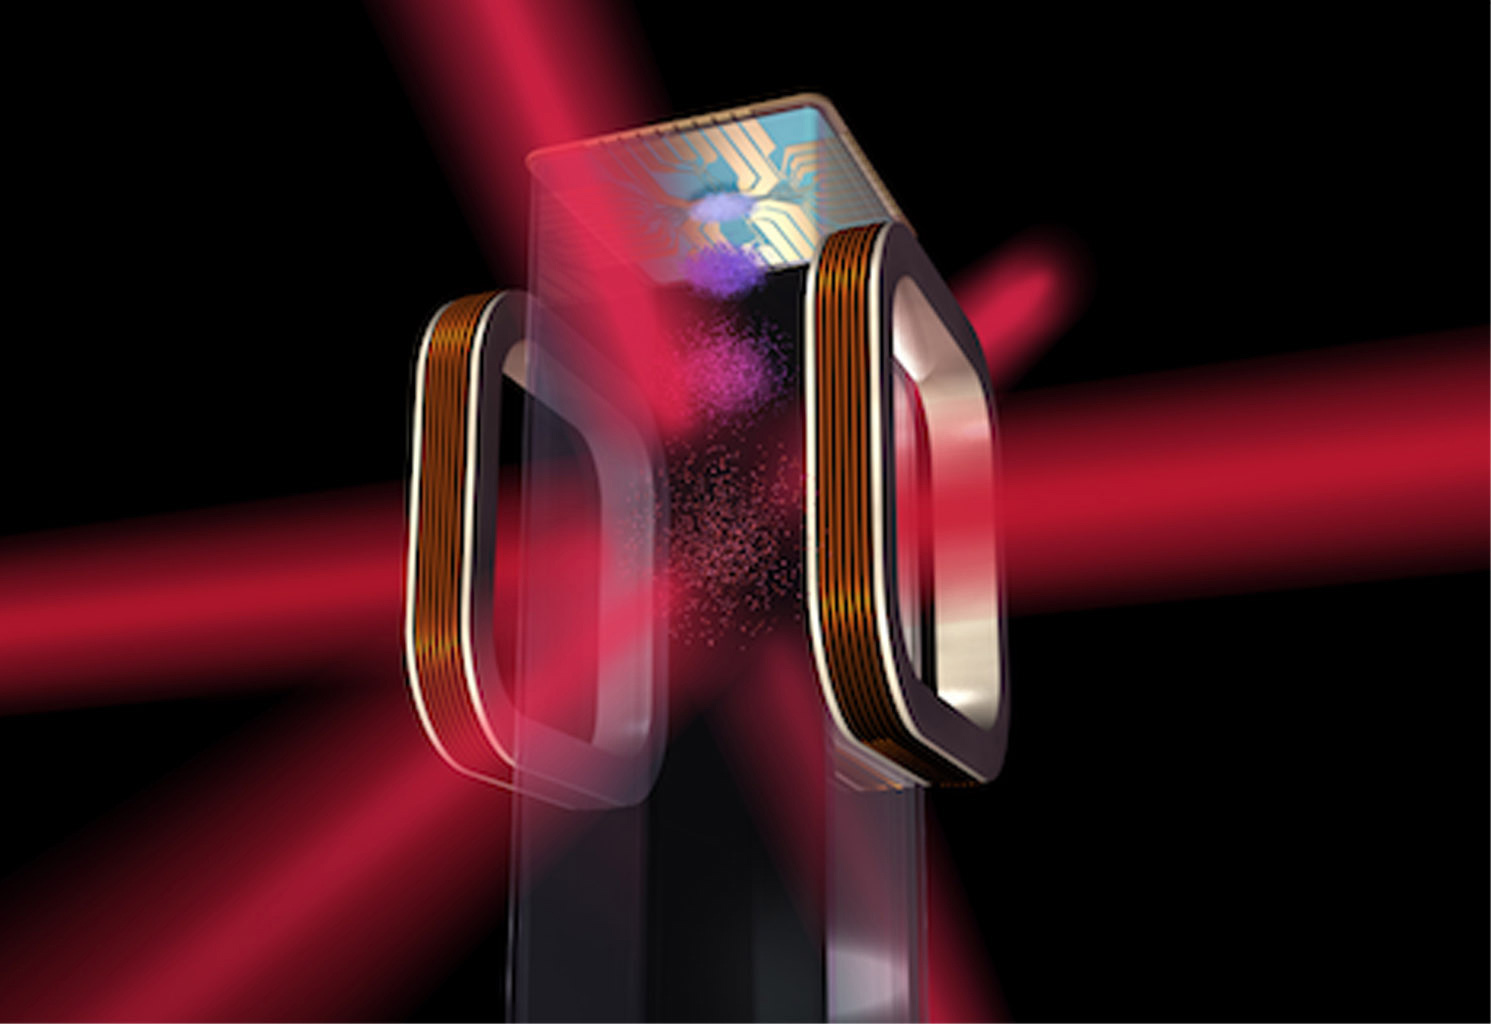 Artist's concept of a magneto-optical trap and atom chip to be used by NASA's Cold Atom Laboratory (CAL) aboard the International Space Station.